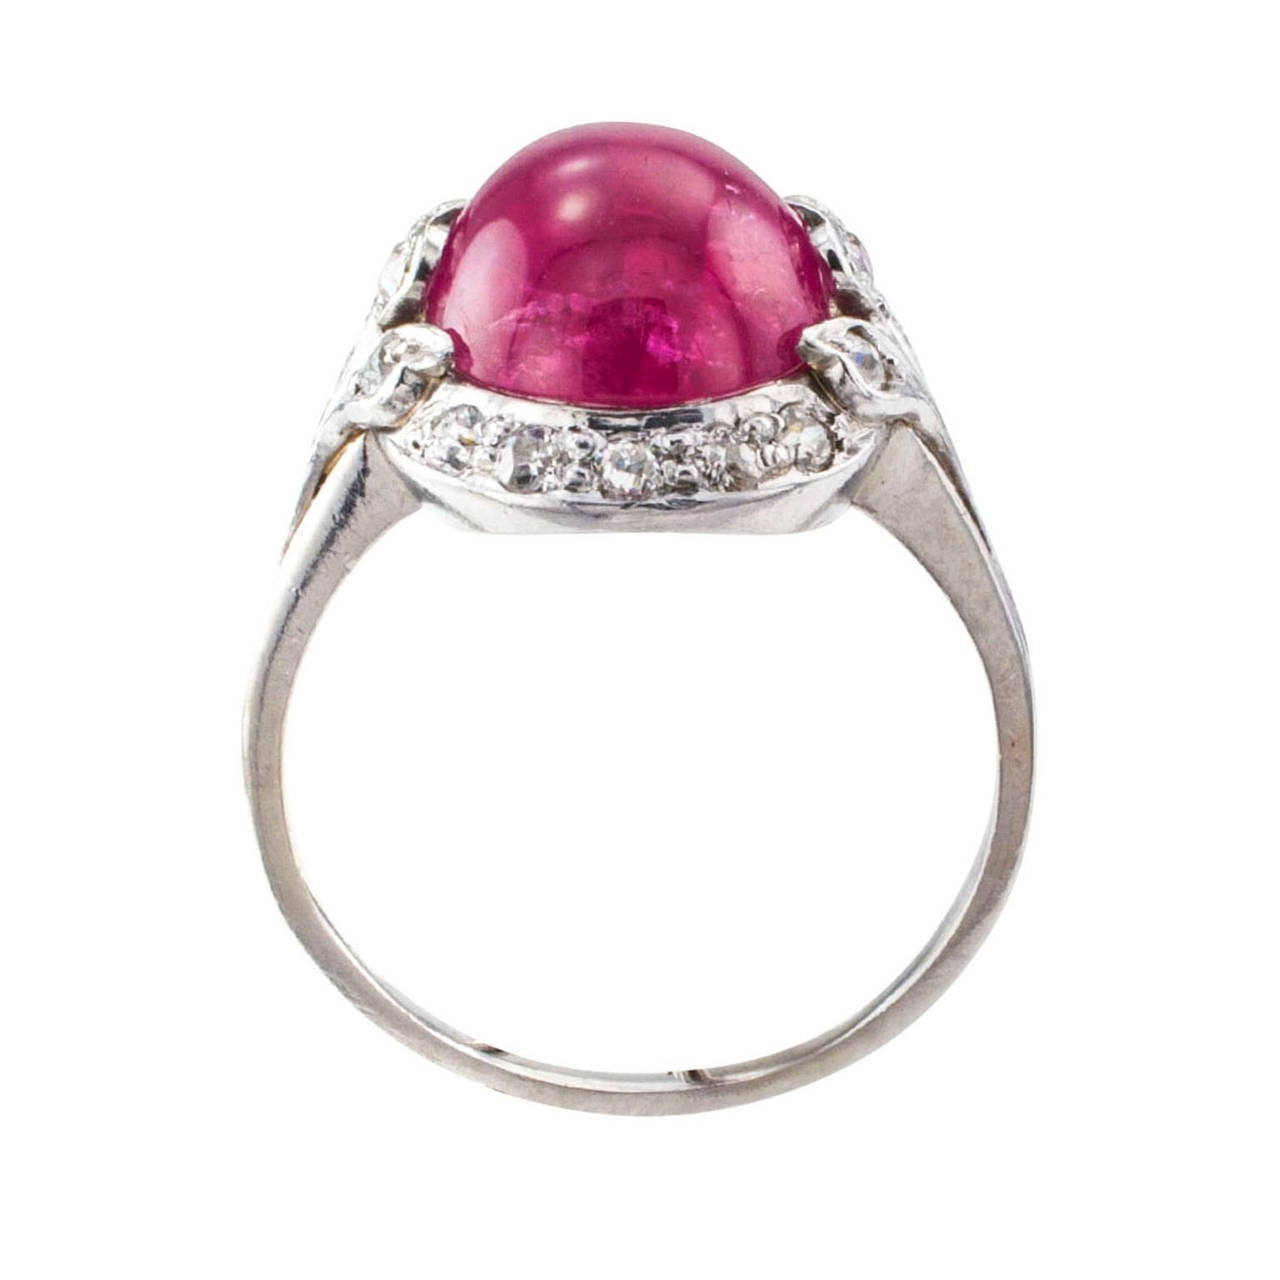 Cabochon Ruby and Diamond Art Deco Lady's Ring